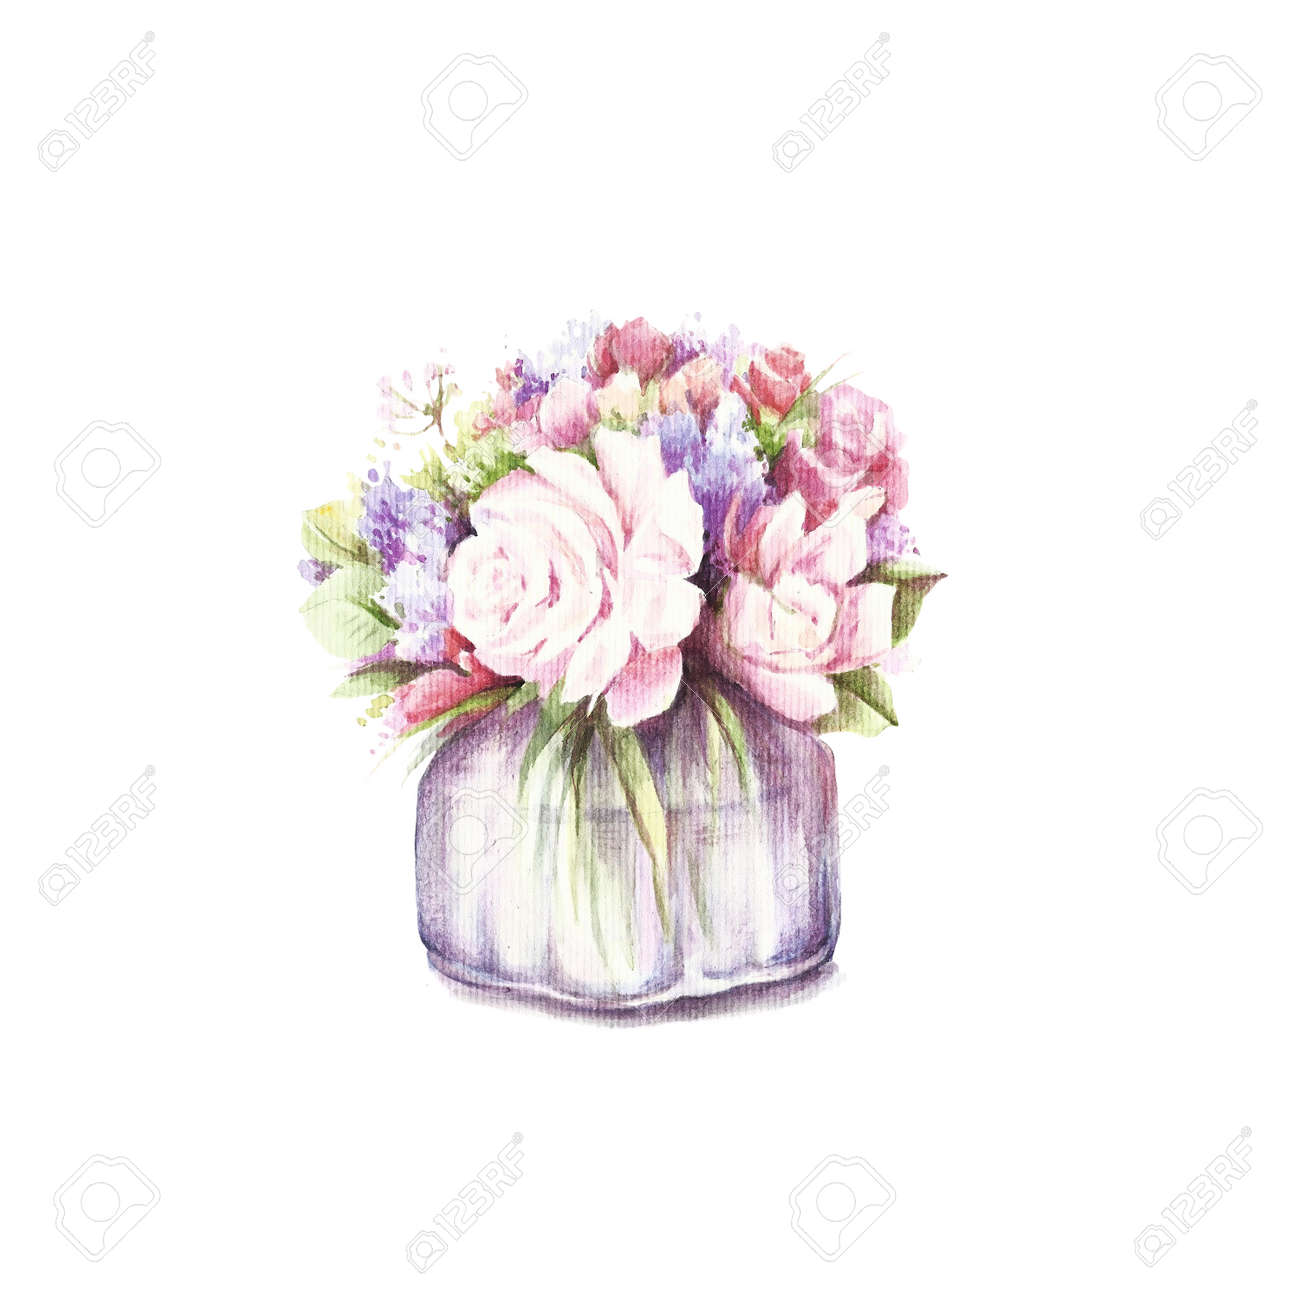 Vase With Bouquet Of Flowers. Hand Draw Watercolor Illustration ...